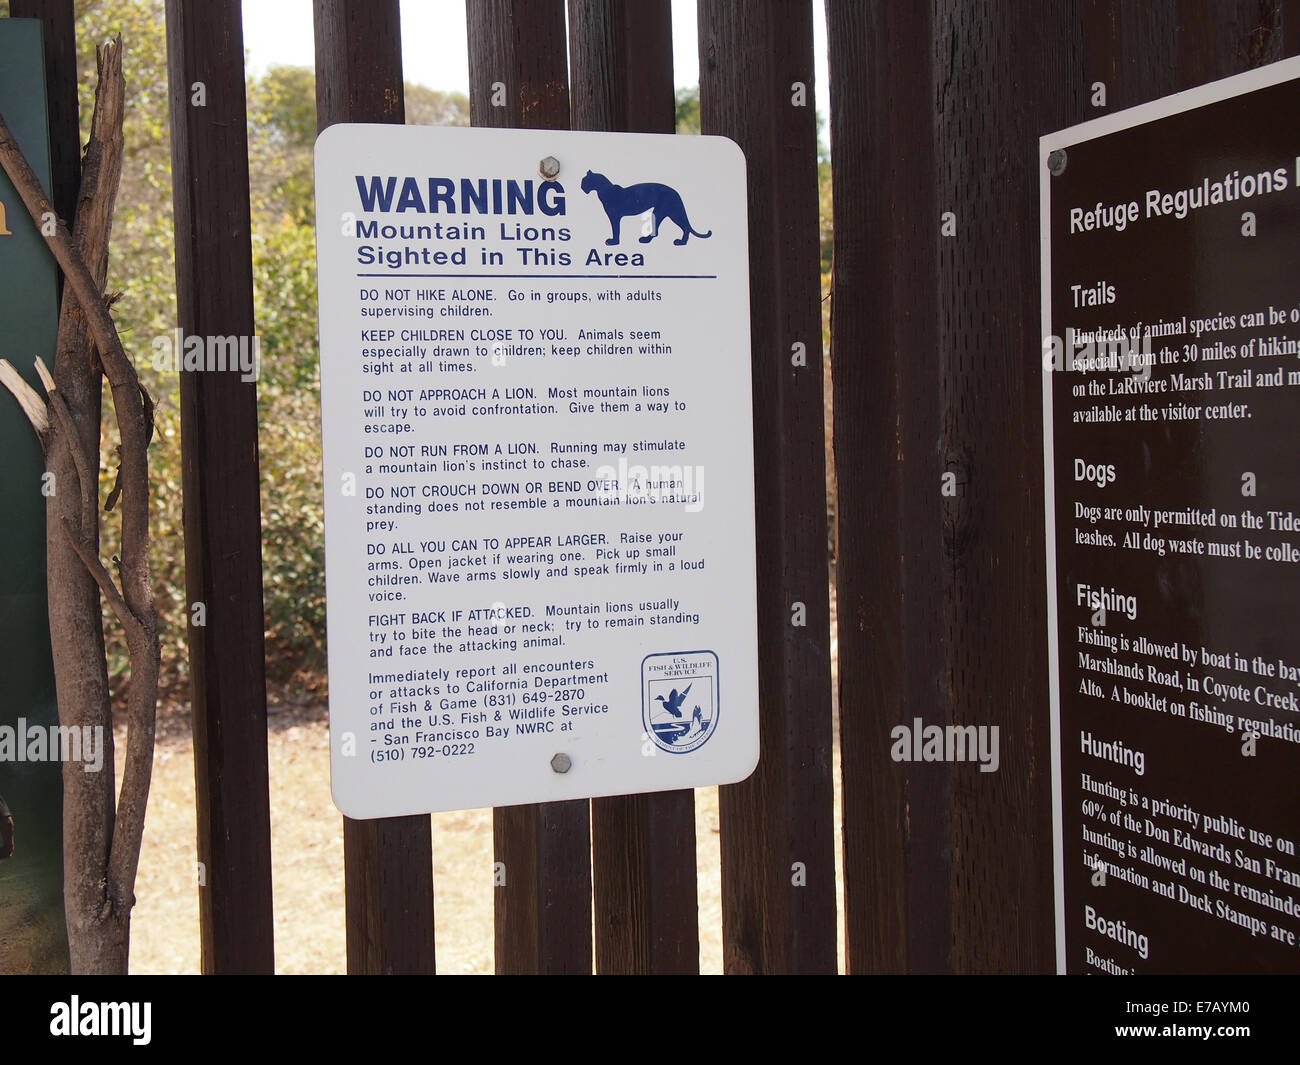 Mountain lion warning sign - Stock Image